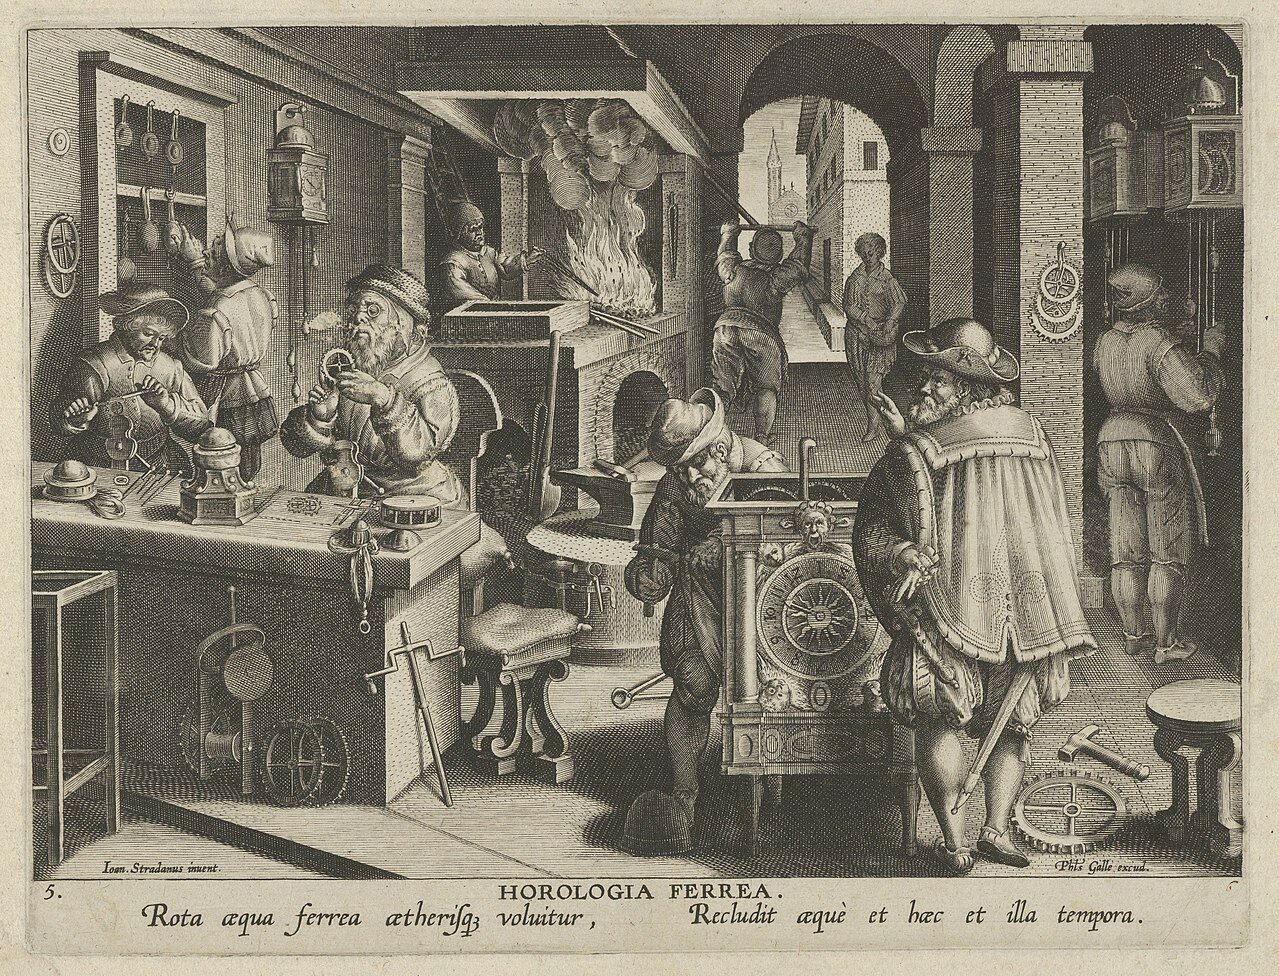 1280px-New_Inventions_of_Modern_Times_-Nova_Reperta-,_The_Invention_of_the_Clockwork,_plate_5_MET_DP841126.jpg